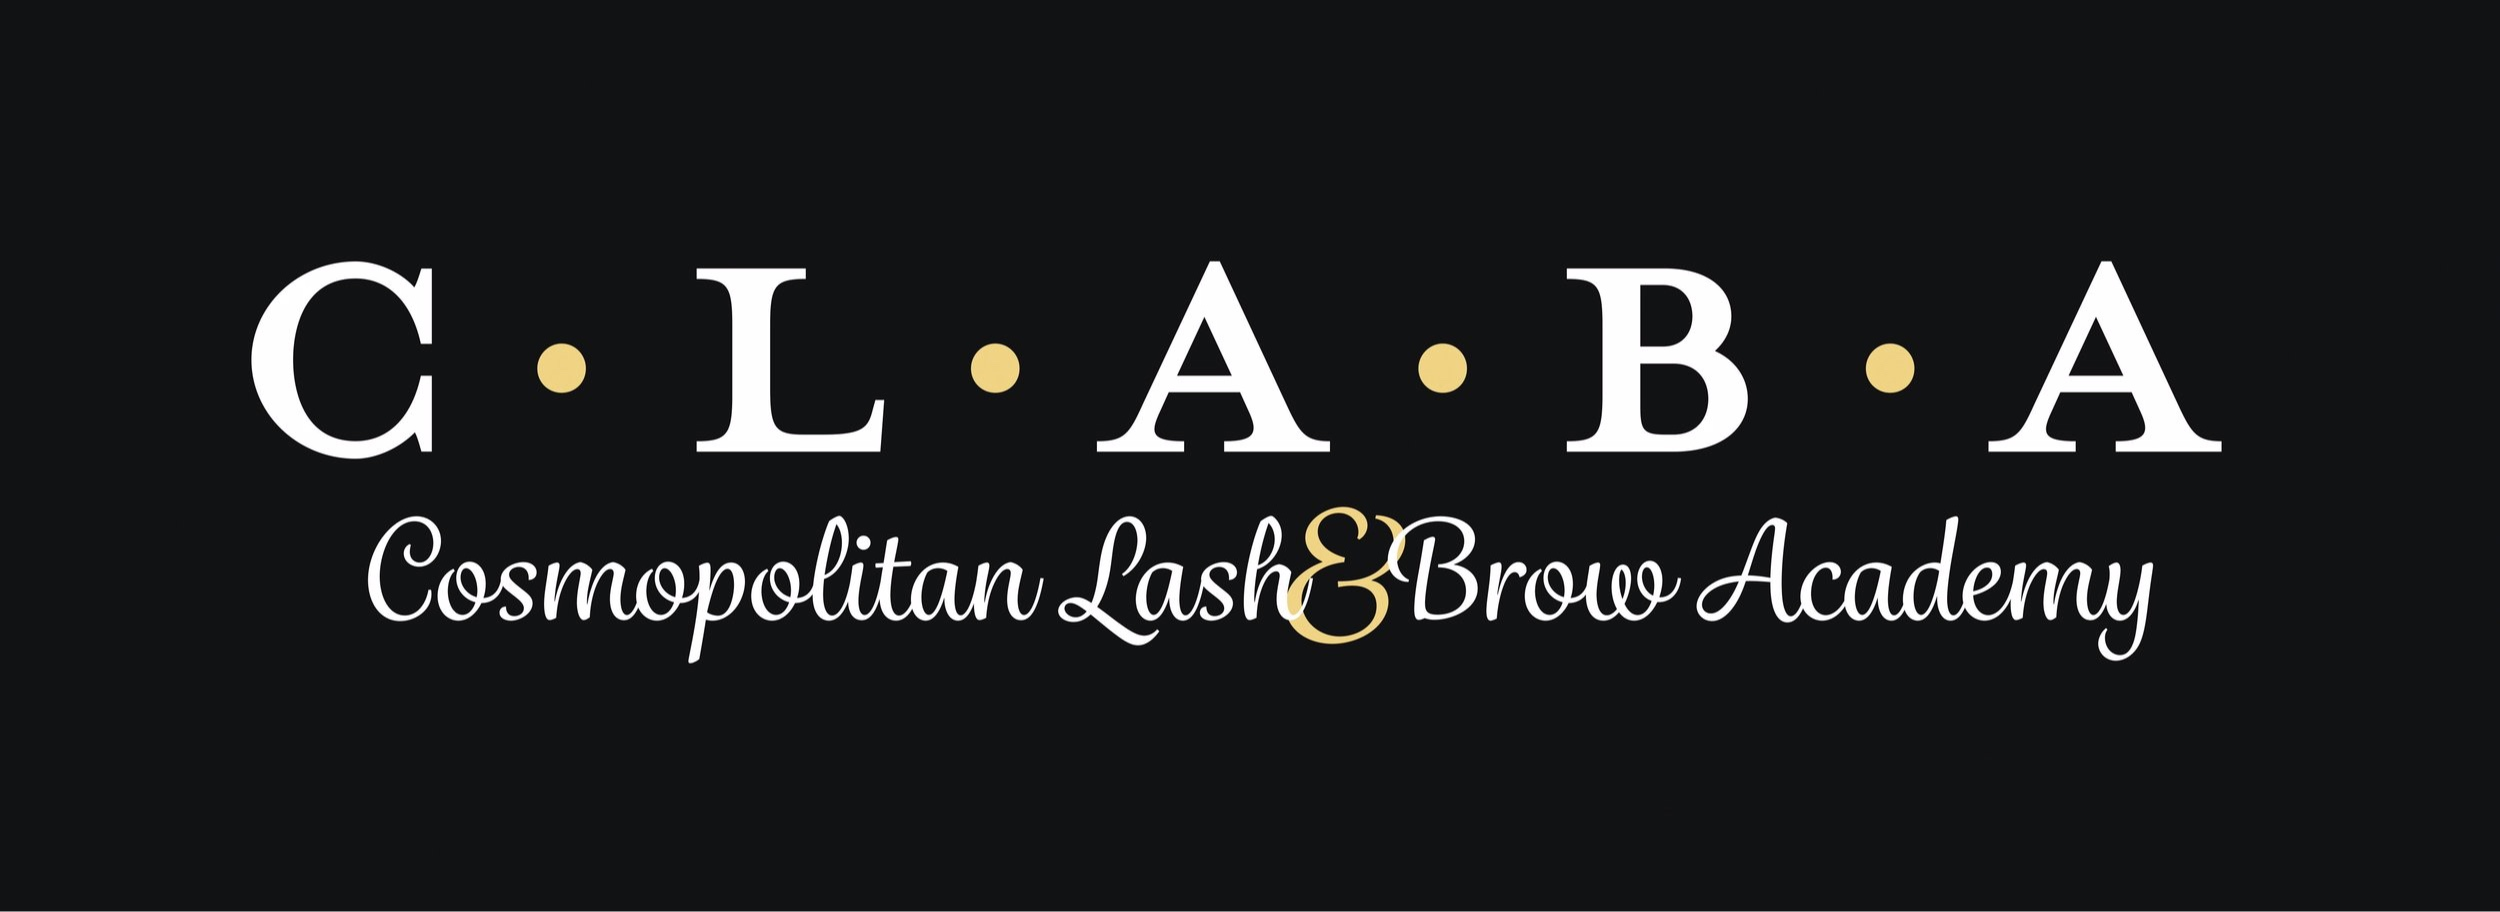 CLICK THE IMAGE TO VISIT THEIR WEBSITE    Visit their Facebook page   Like them on instagram@claba.inc  Email: info@claba.ca  Phone: 1-877-262-5499